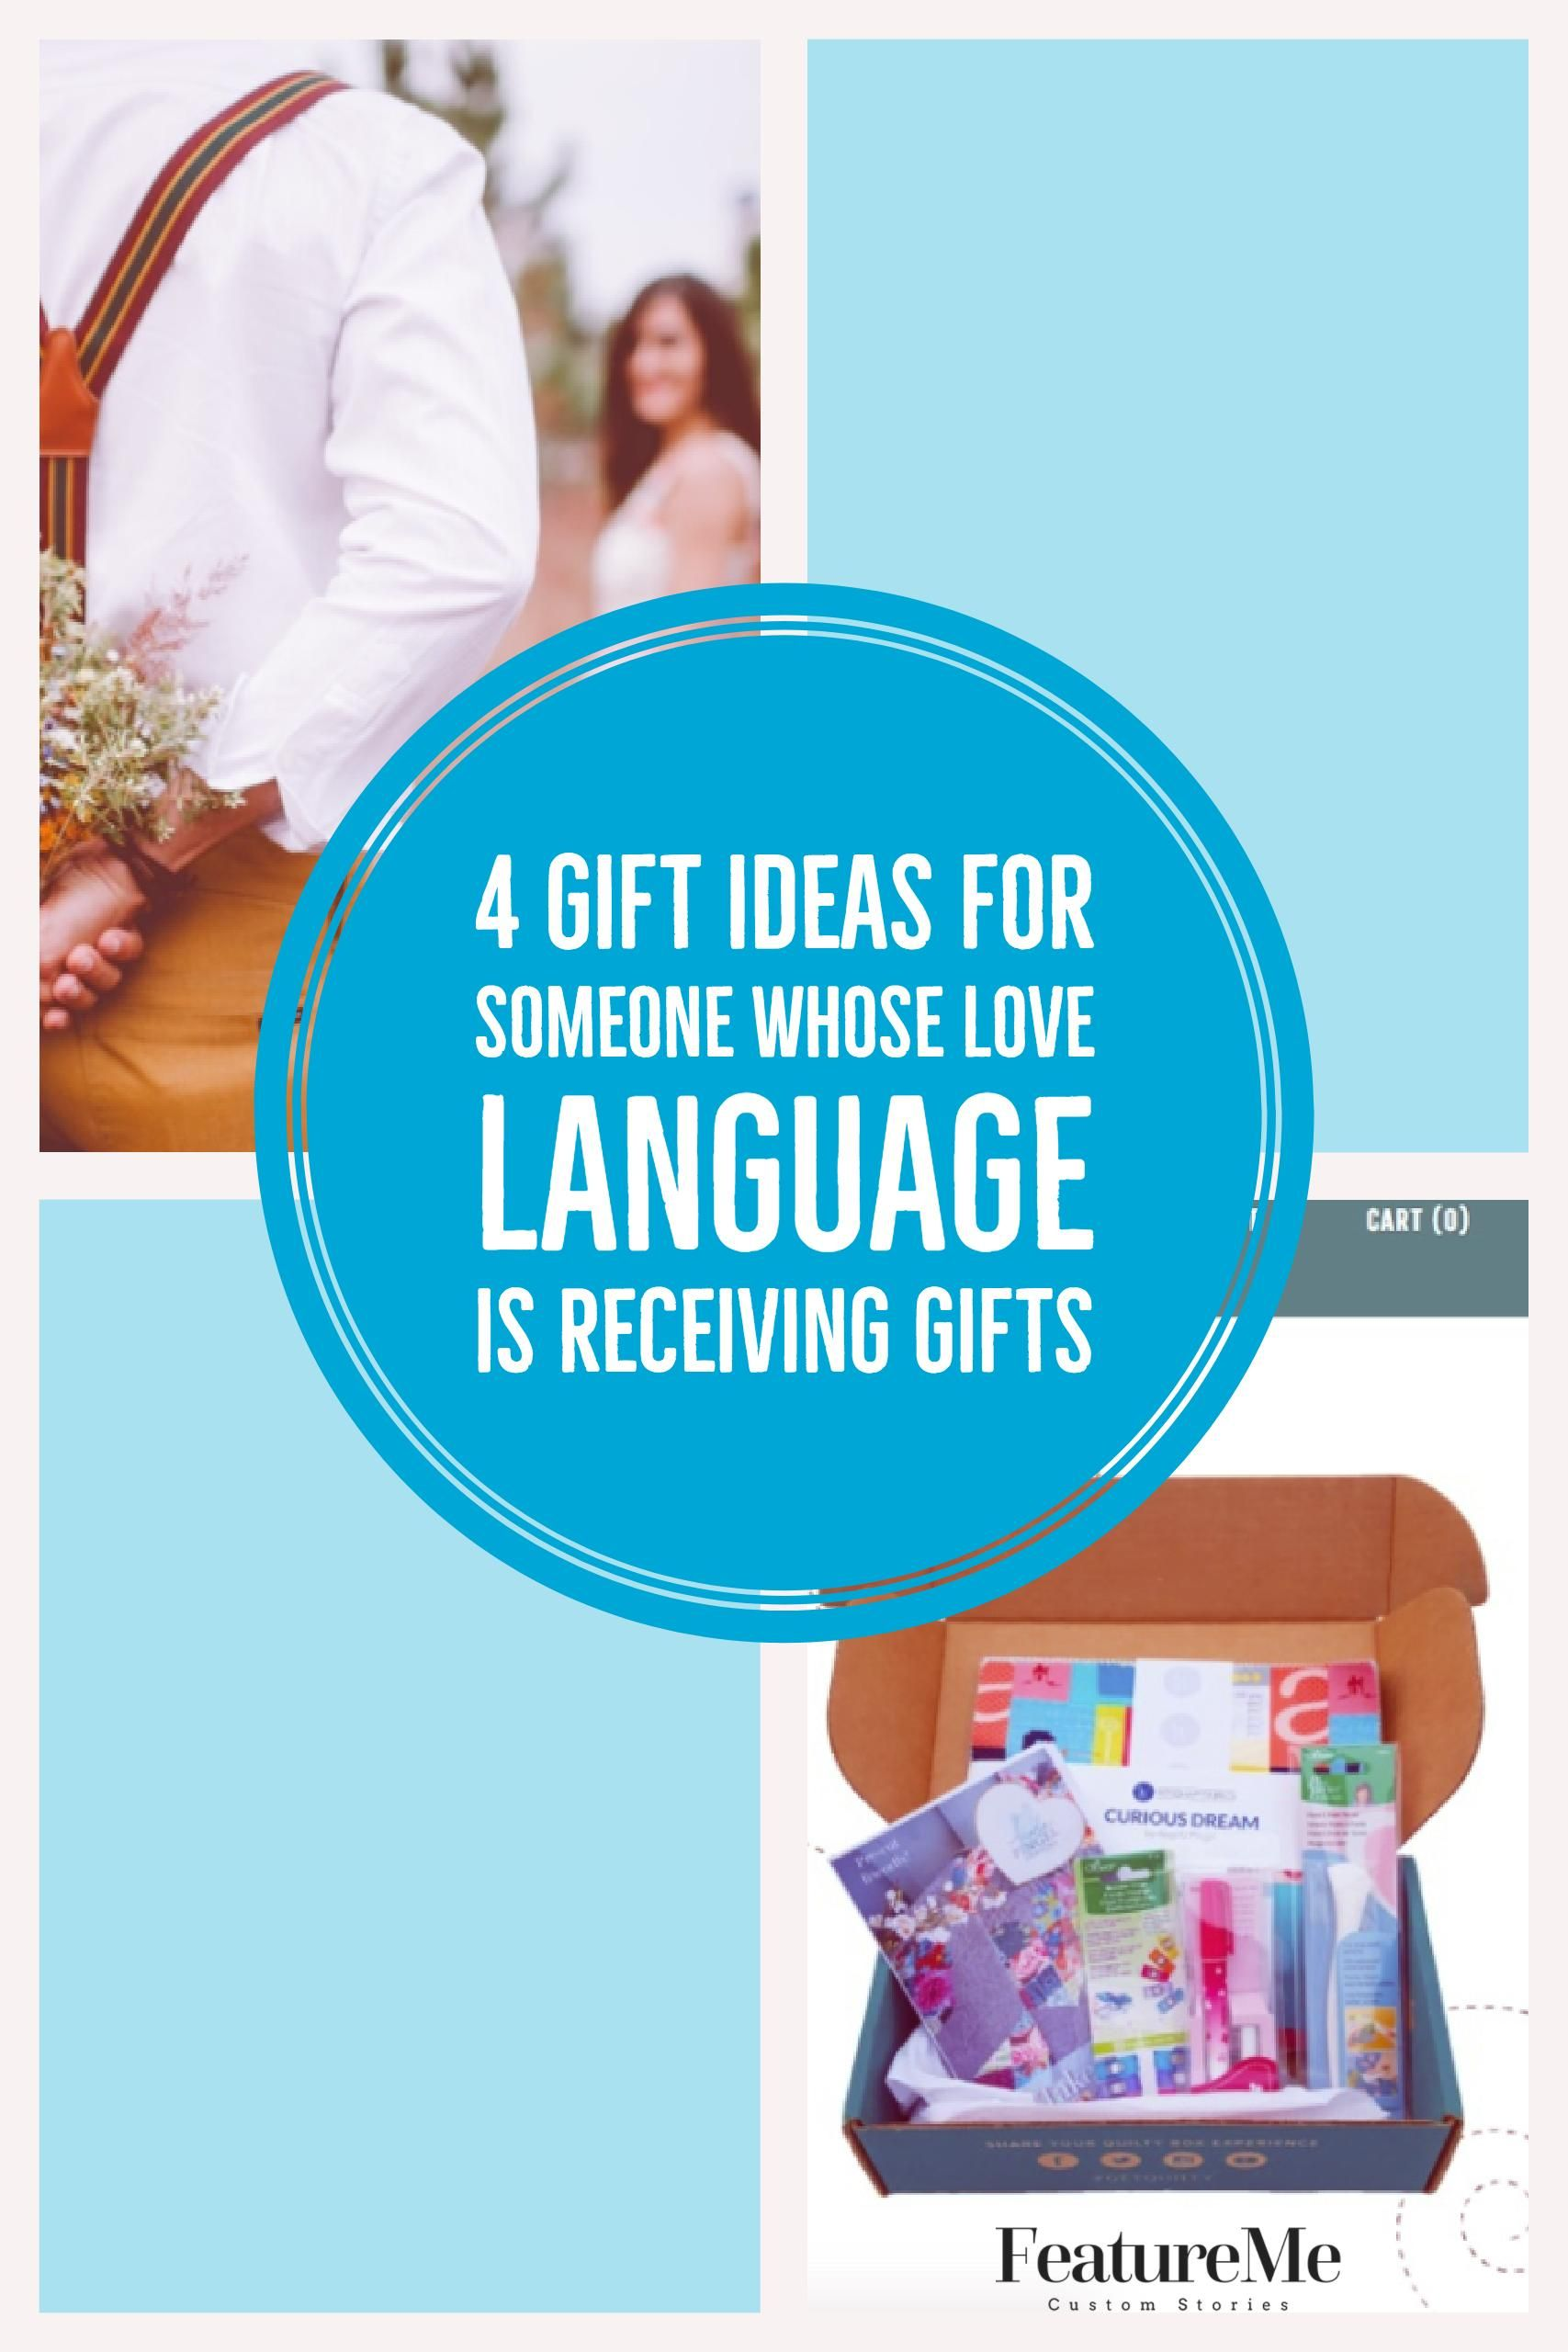 Four gift ideas for someone whose love language is